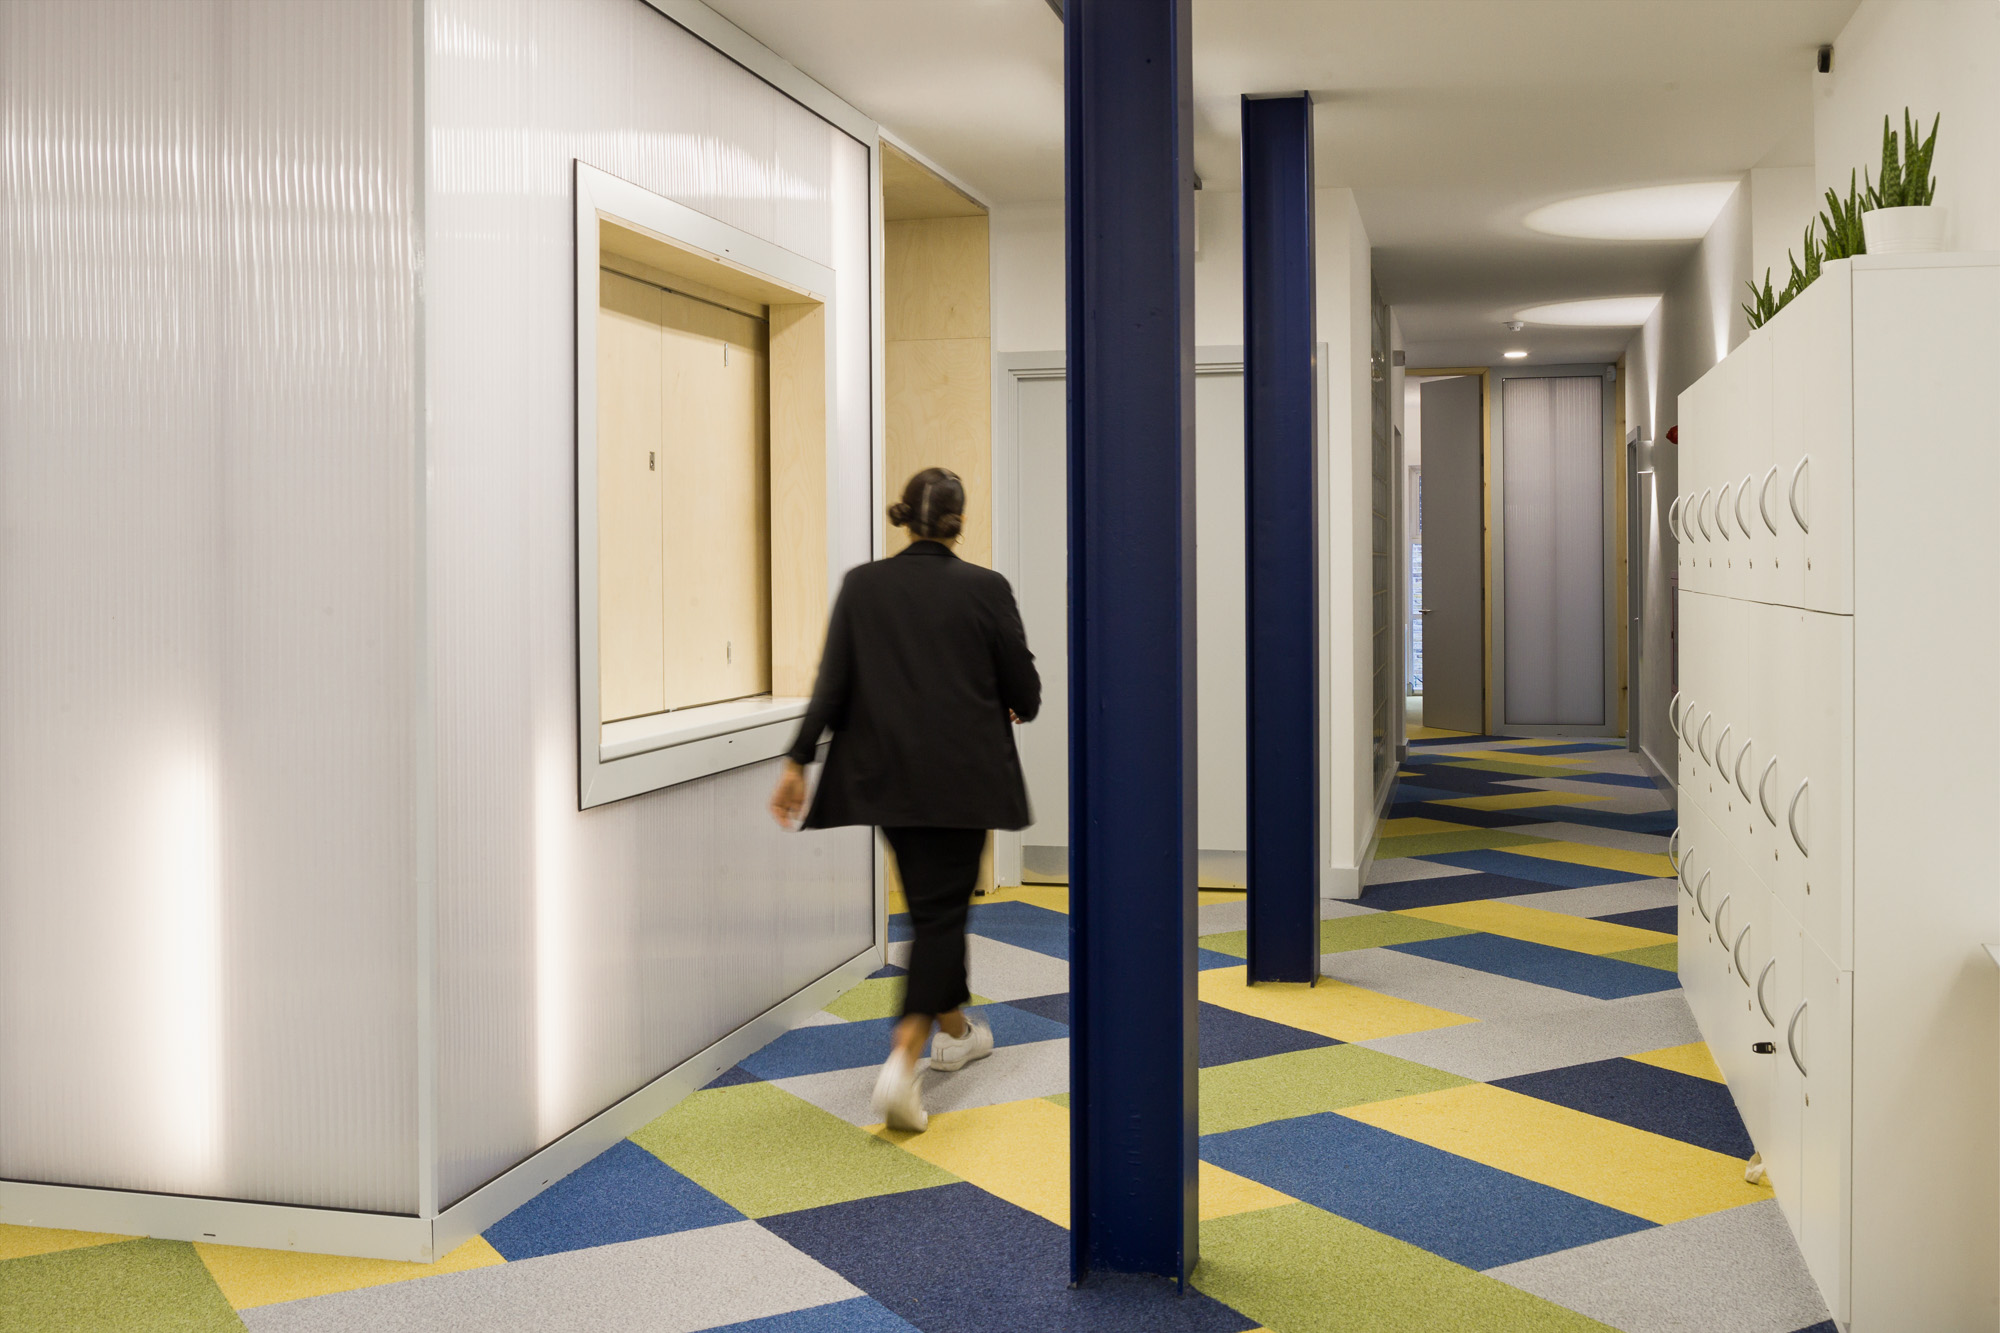 Tile imitation carpets and coloured columns in the charity office.